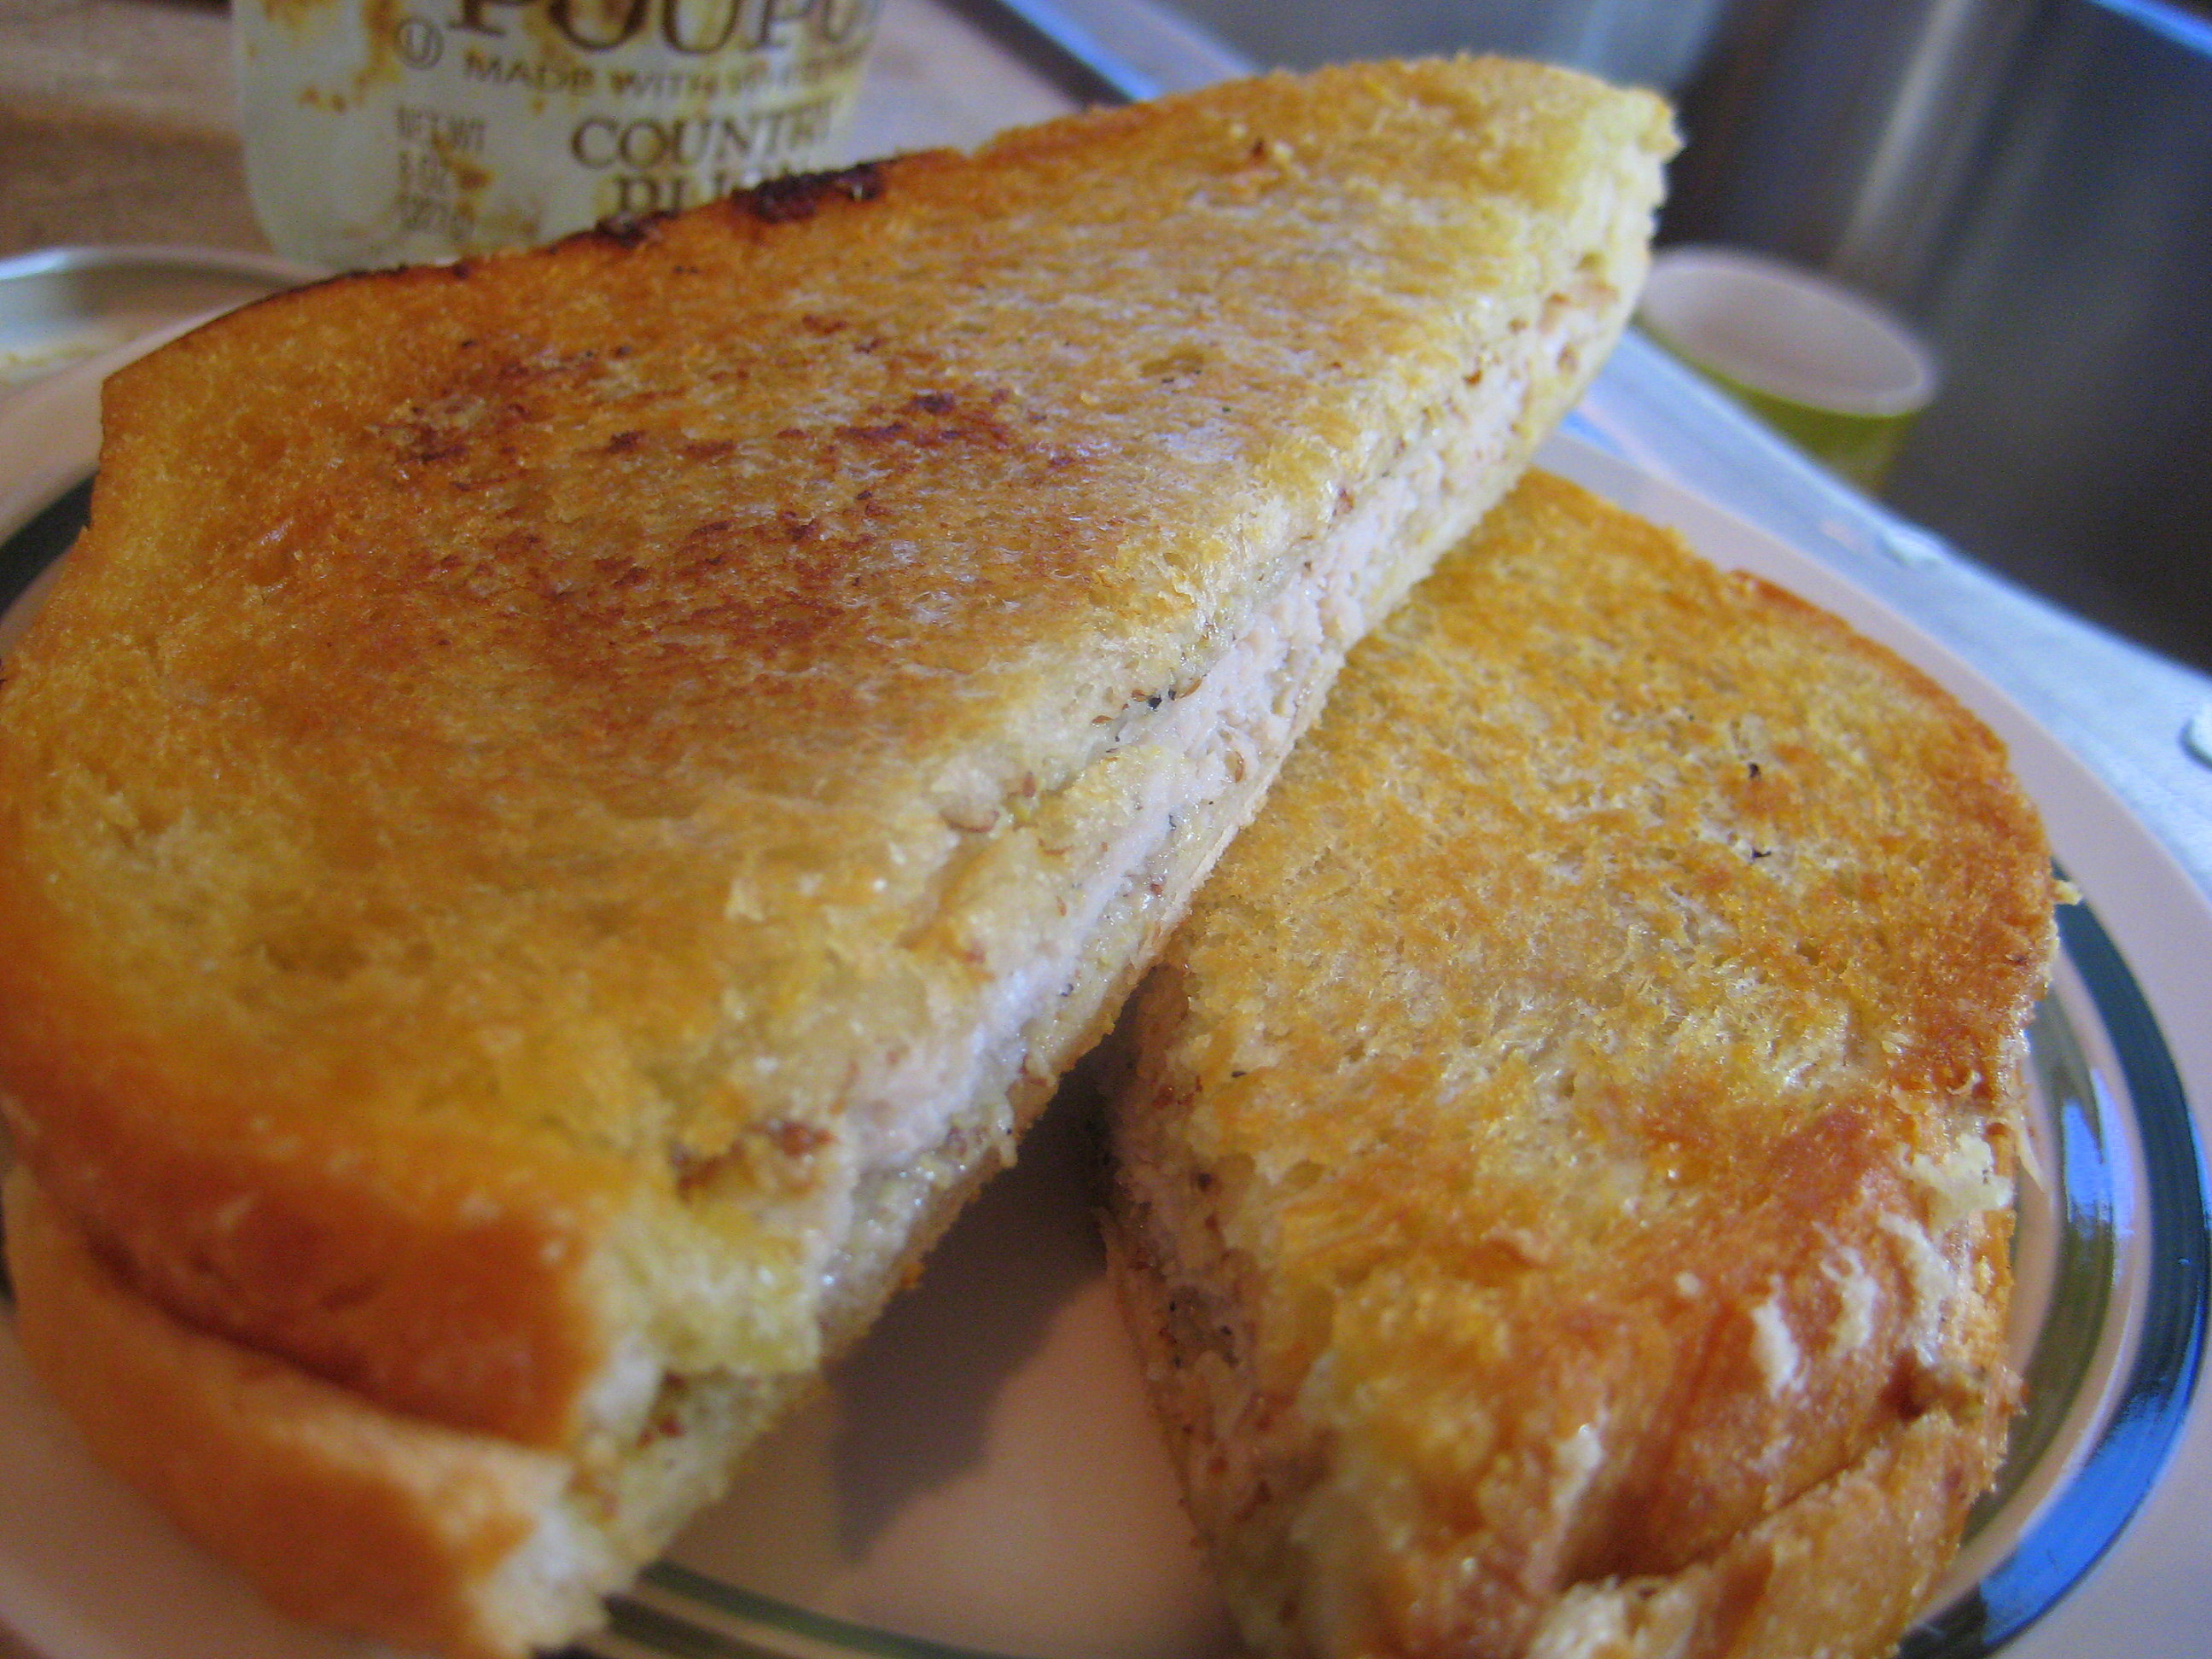 Grilled cheese another way.